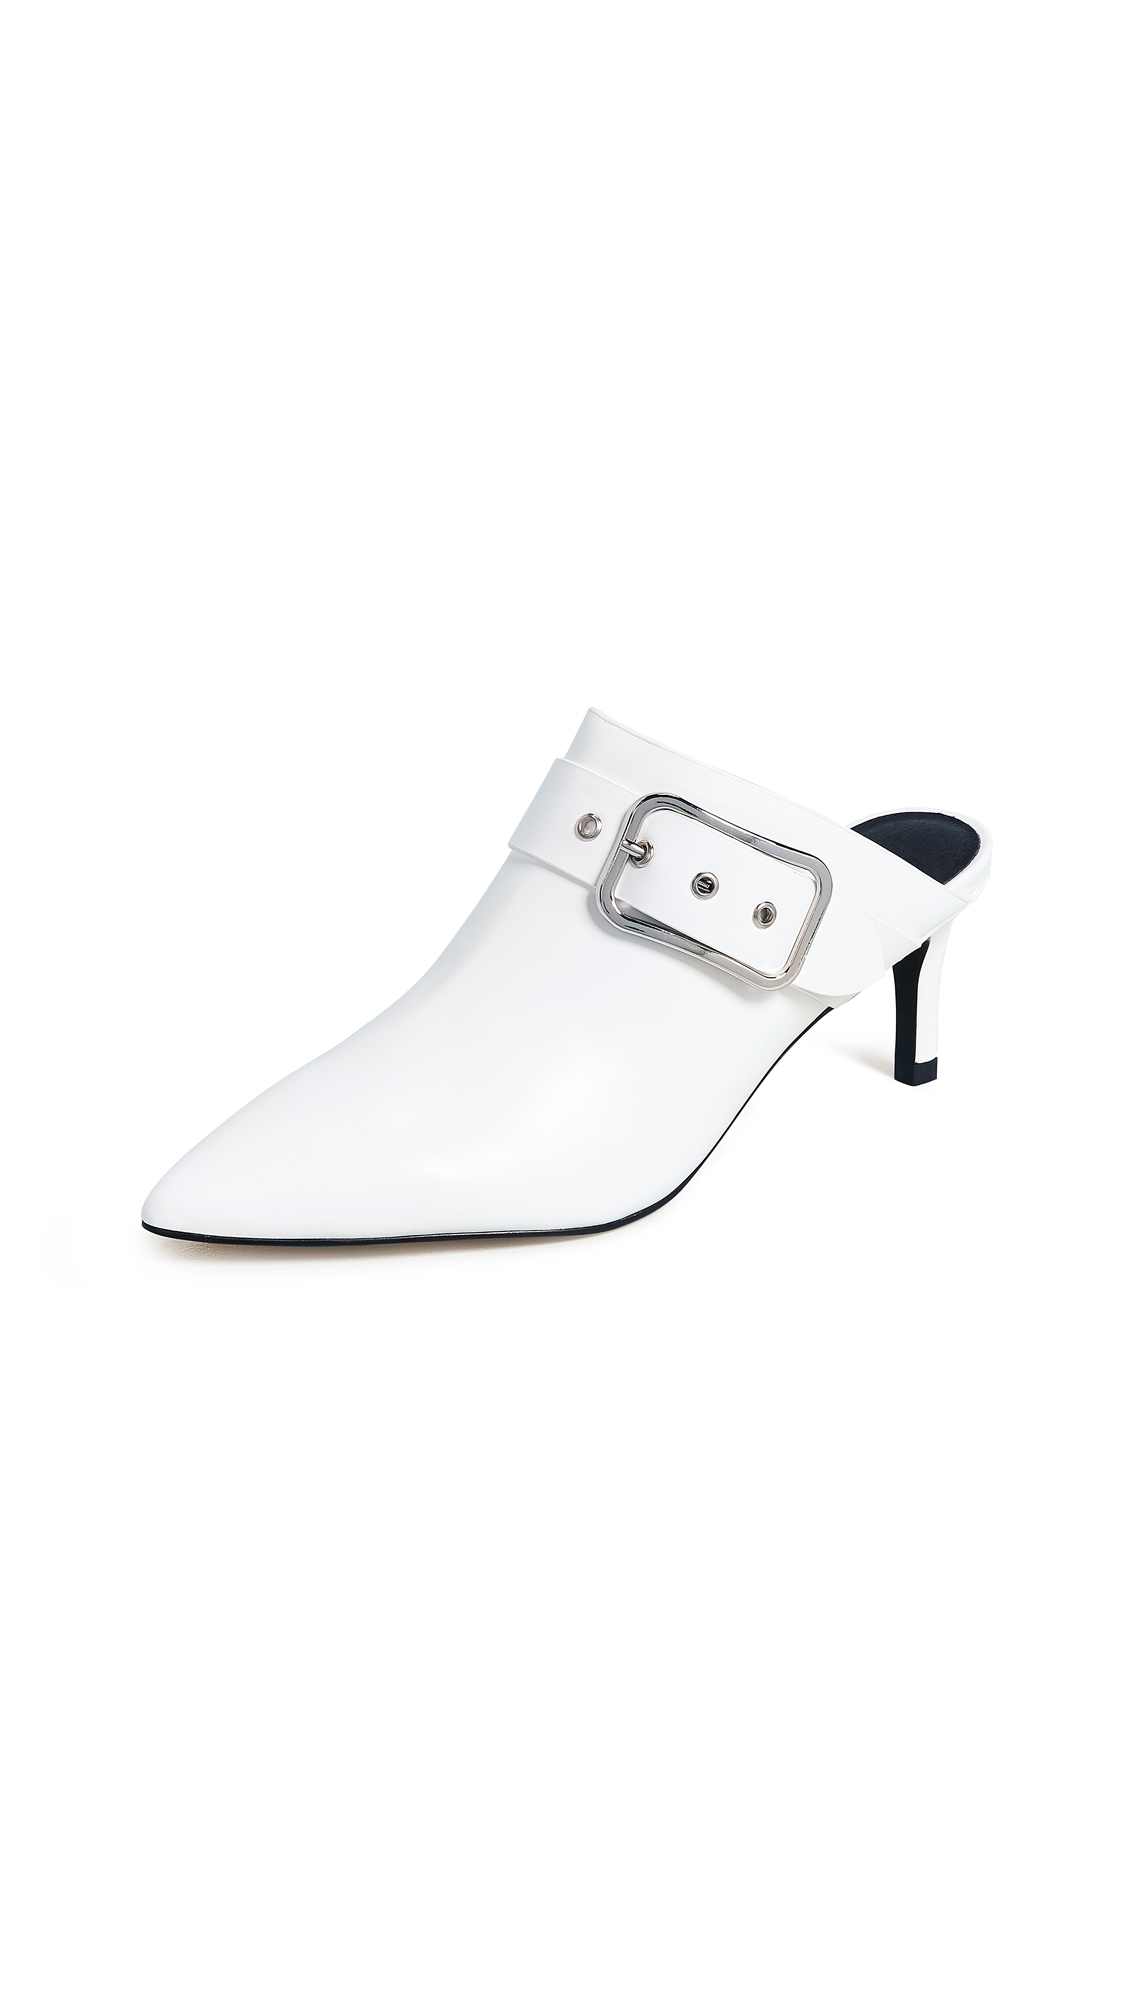 Sol Sana River Heel Slides - White